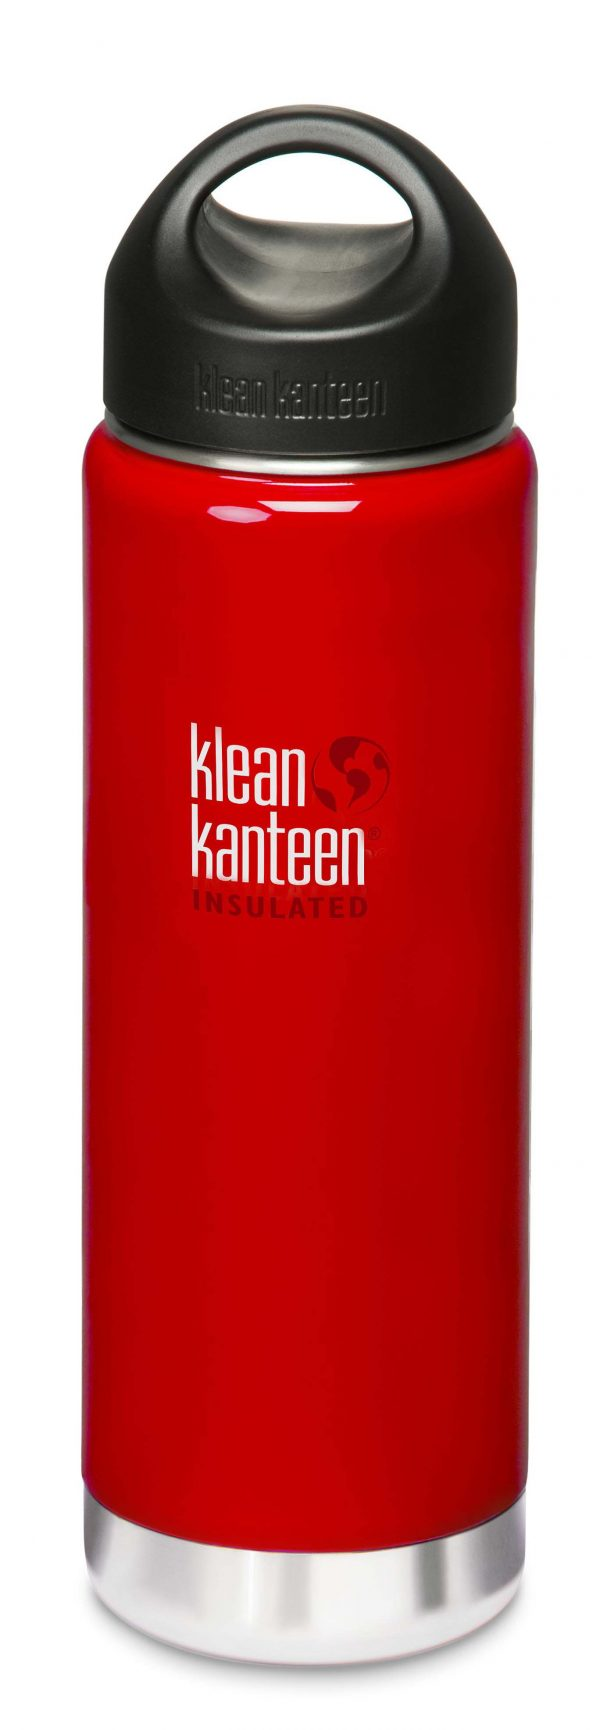 Klean Kanteen 20oz (592ml) Wide Mouth Insulated Bottle- Sangria Red Colour